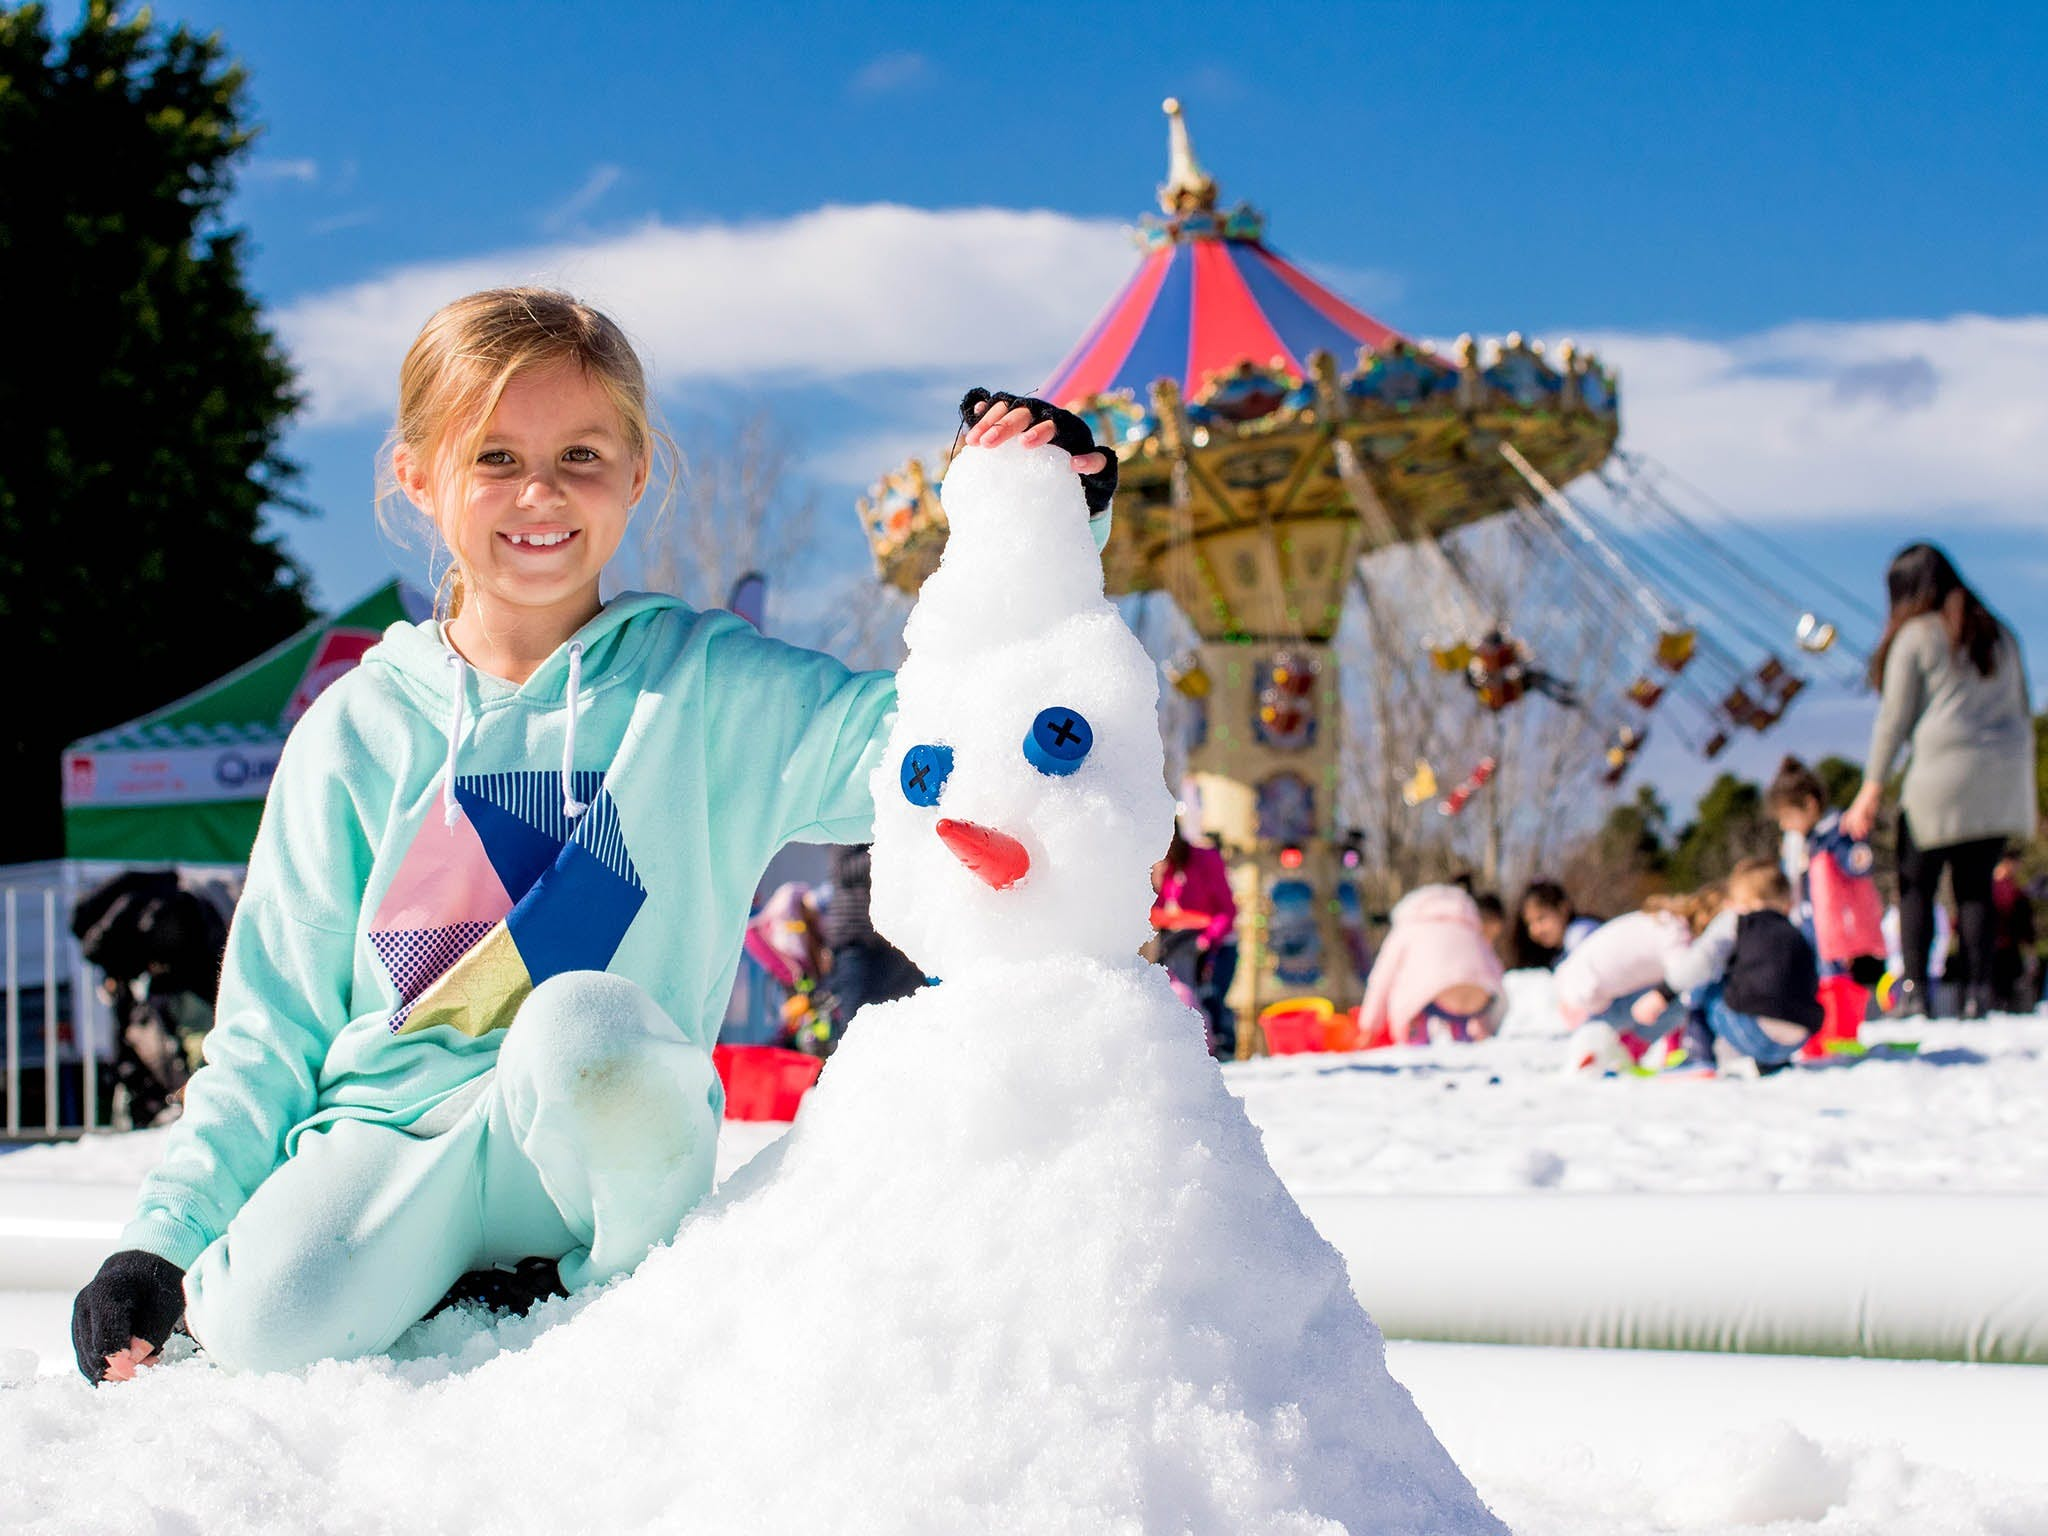 Snow Time in the Garden - Hunter Valley Gardens - Cancelled - Pubs Perth